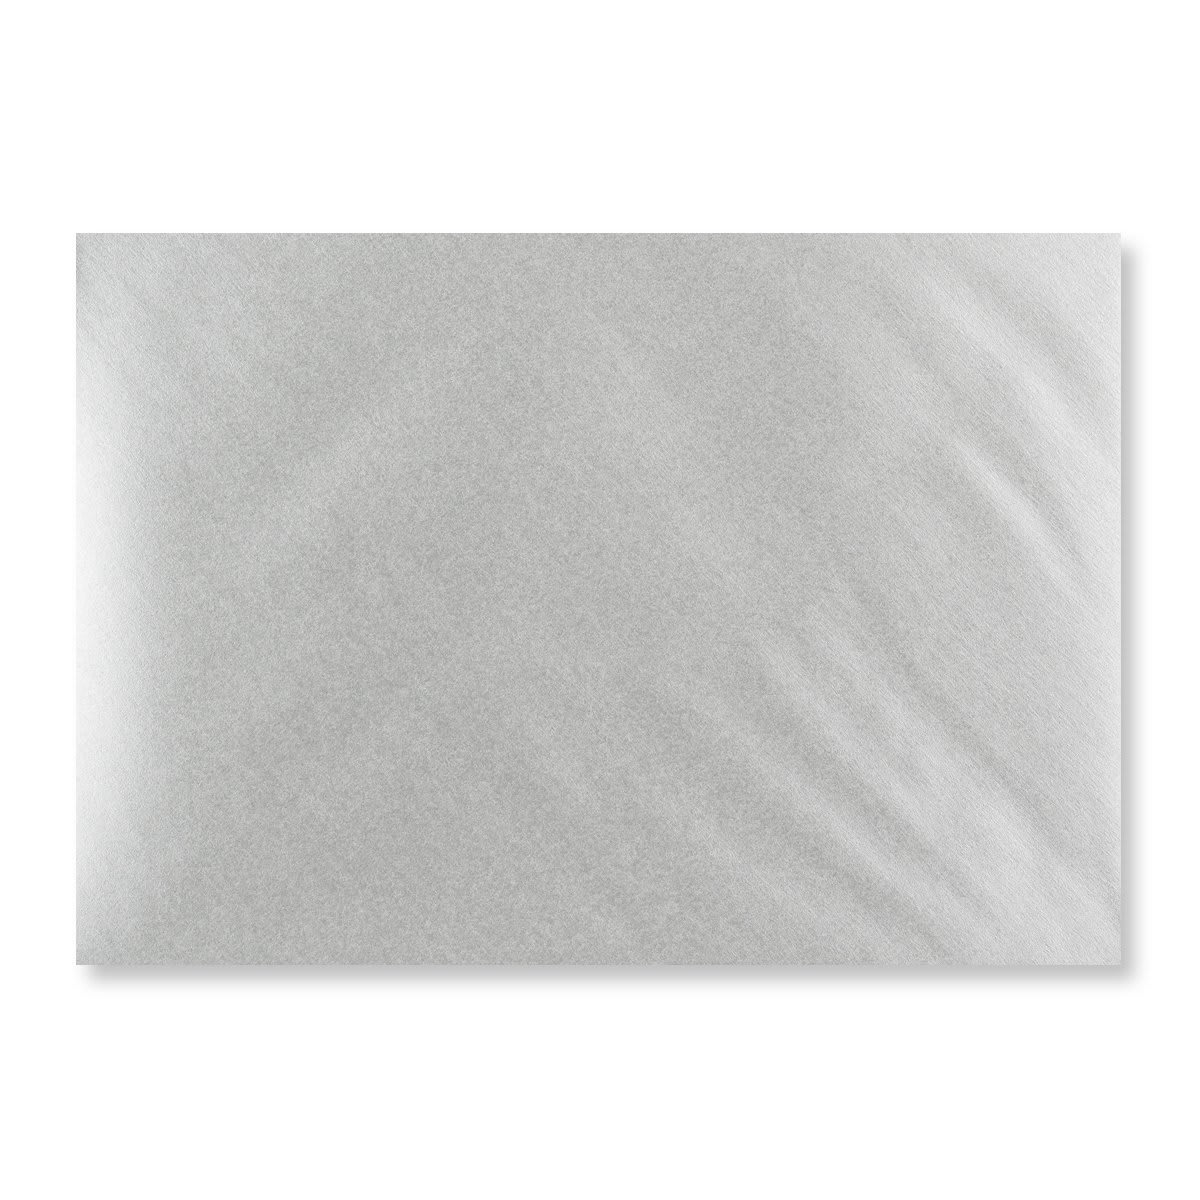 C5 METALLIC SILVER ENVELOPES